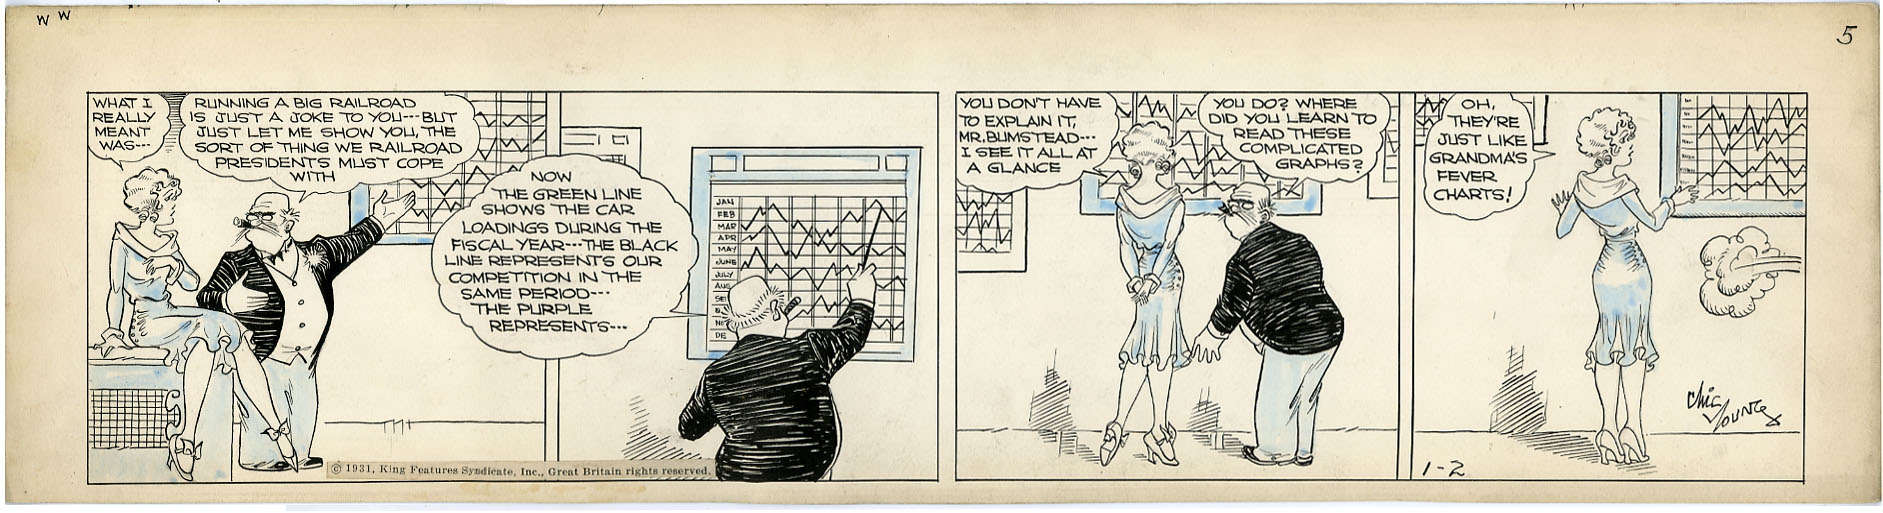 CHIC YOUNG - BLONDIE DAILY COMIC STRIP ORIGINAL ART 1-2-31 RUNNING A RAILROAD